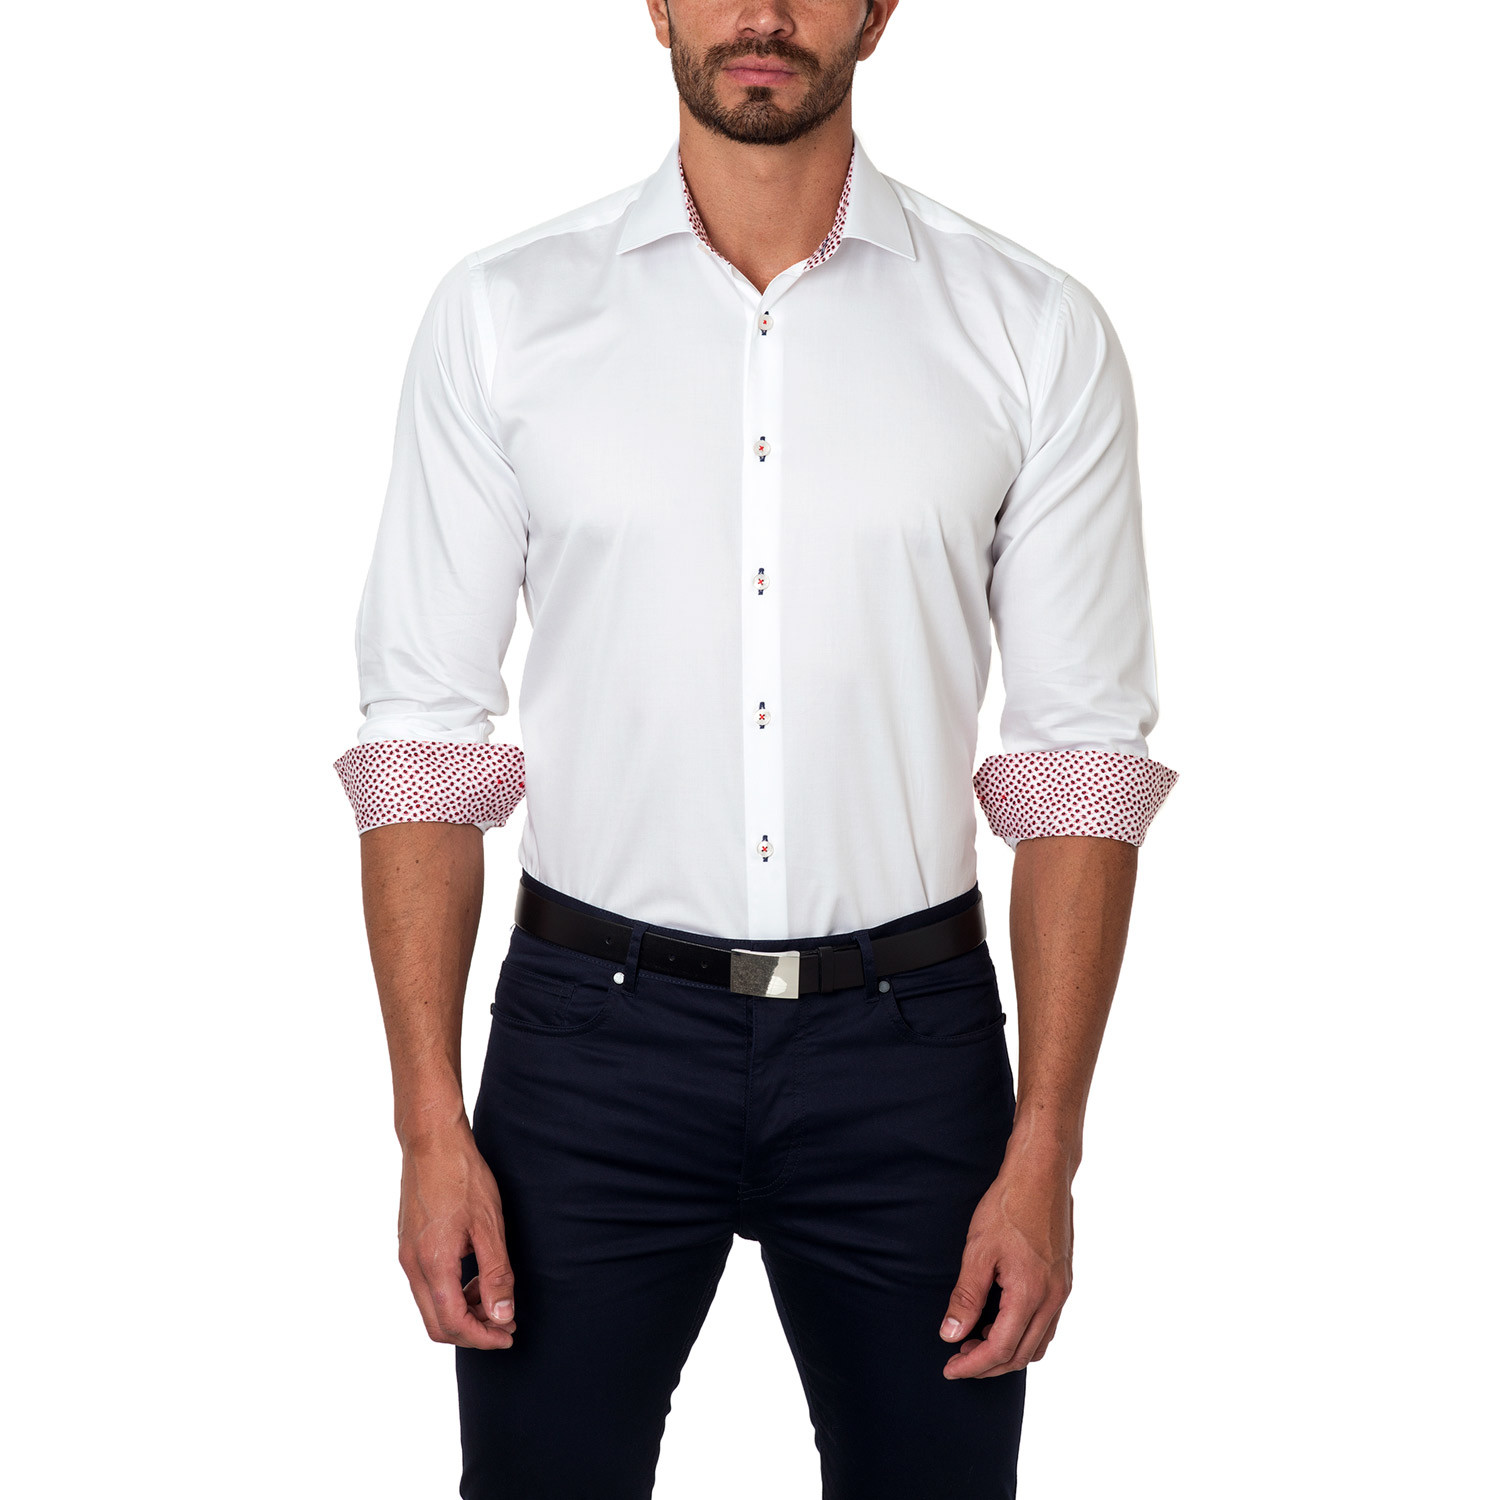 Classic dress shirt contrast placket white us s 15r for Classic white dress shirt